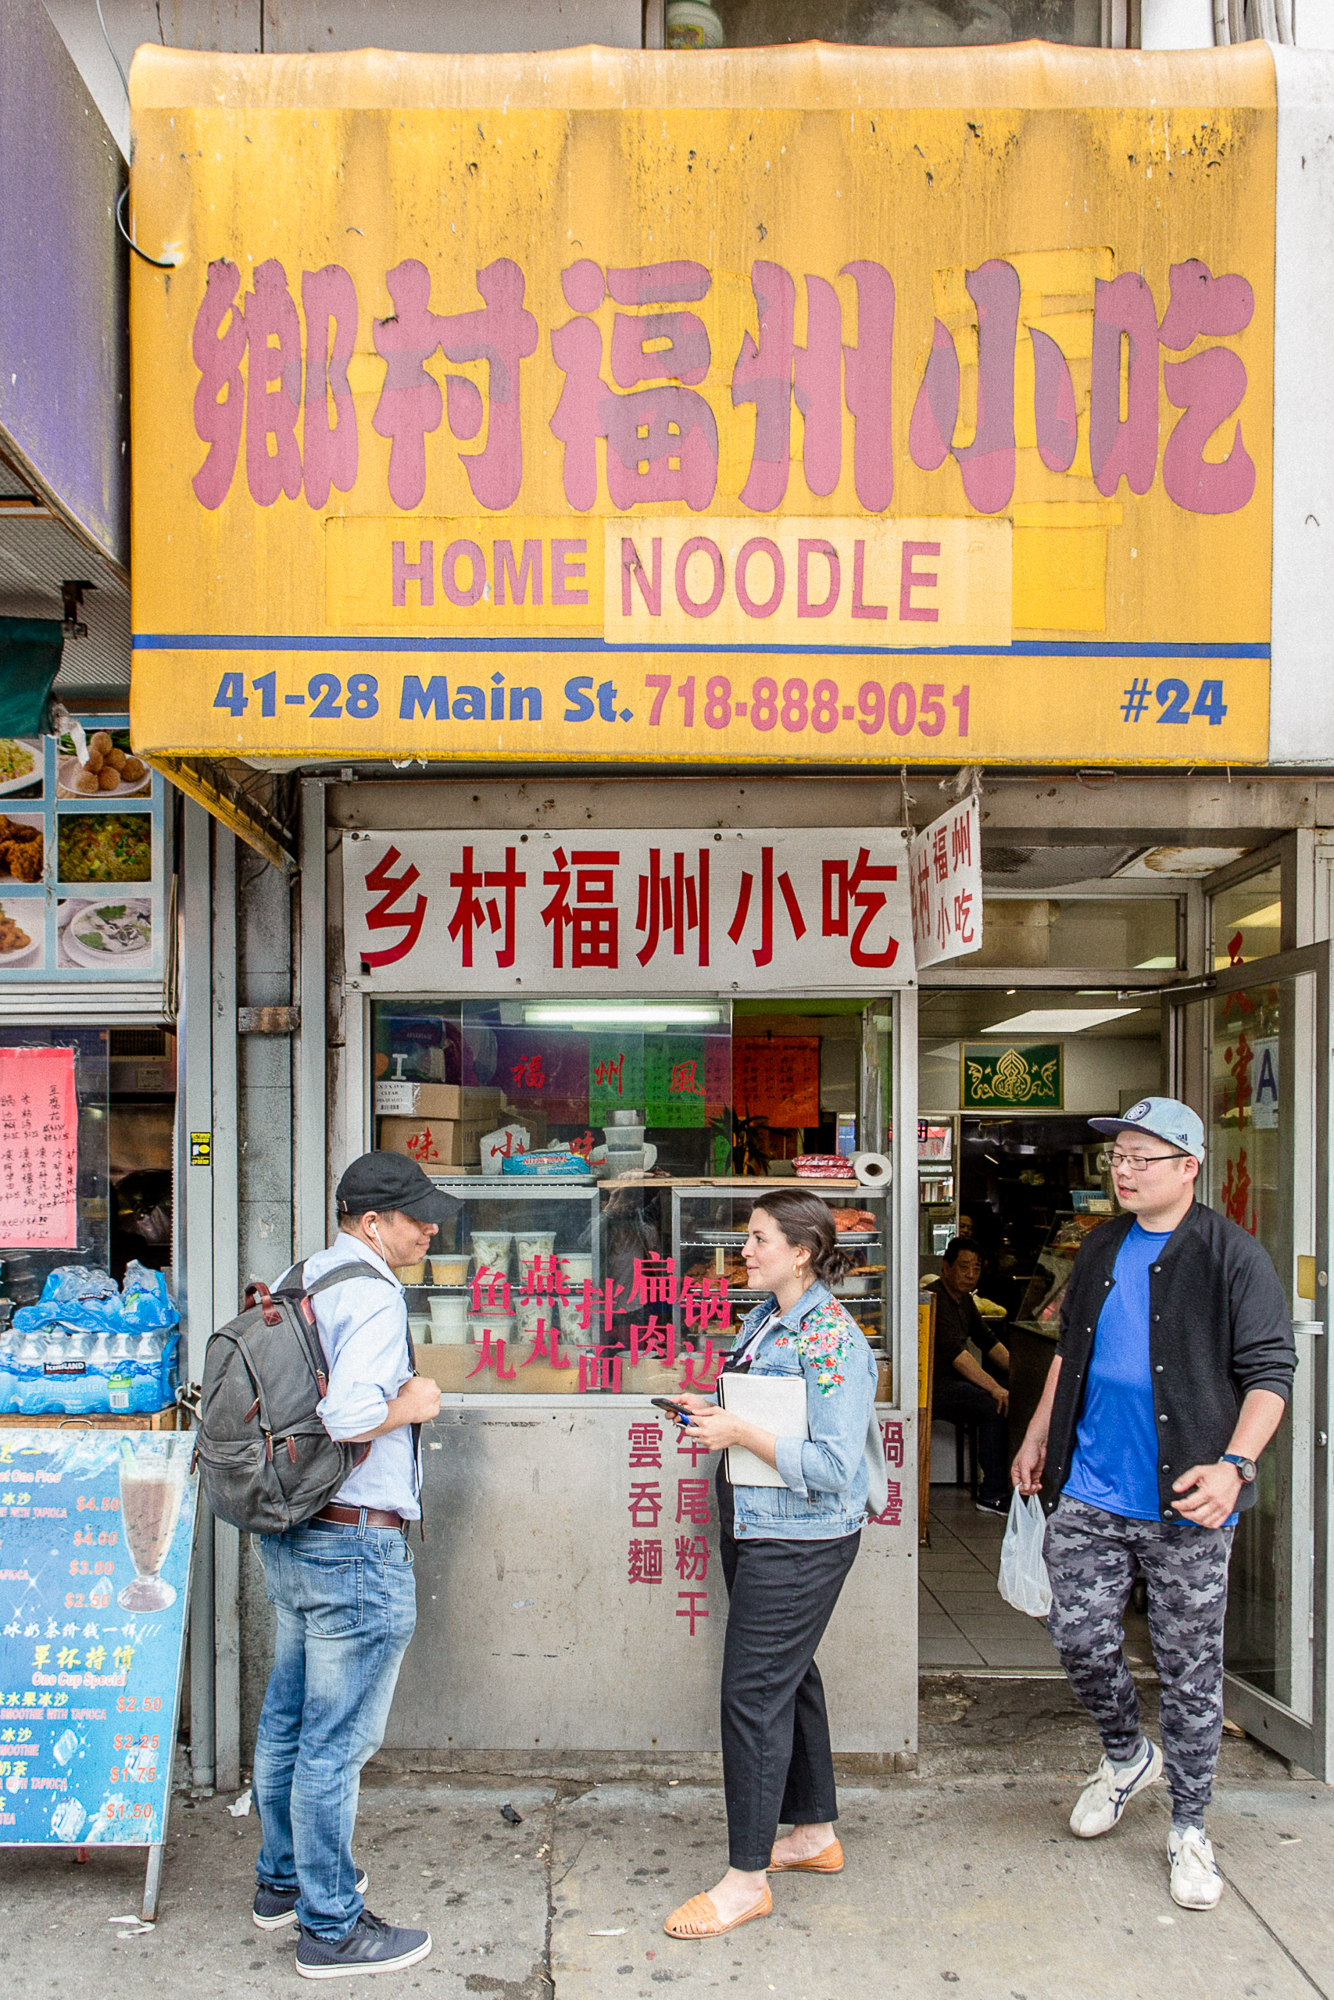 Home Noodle in Flushing, Queens